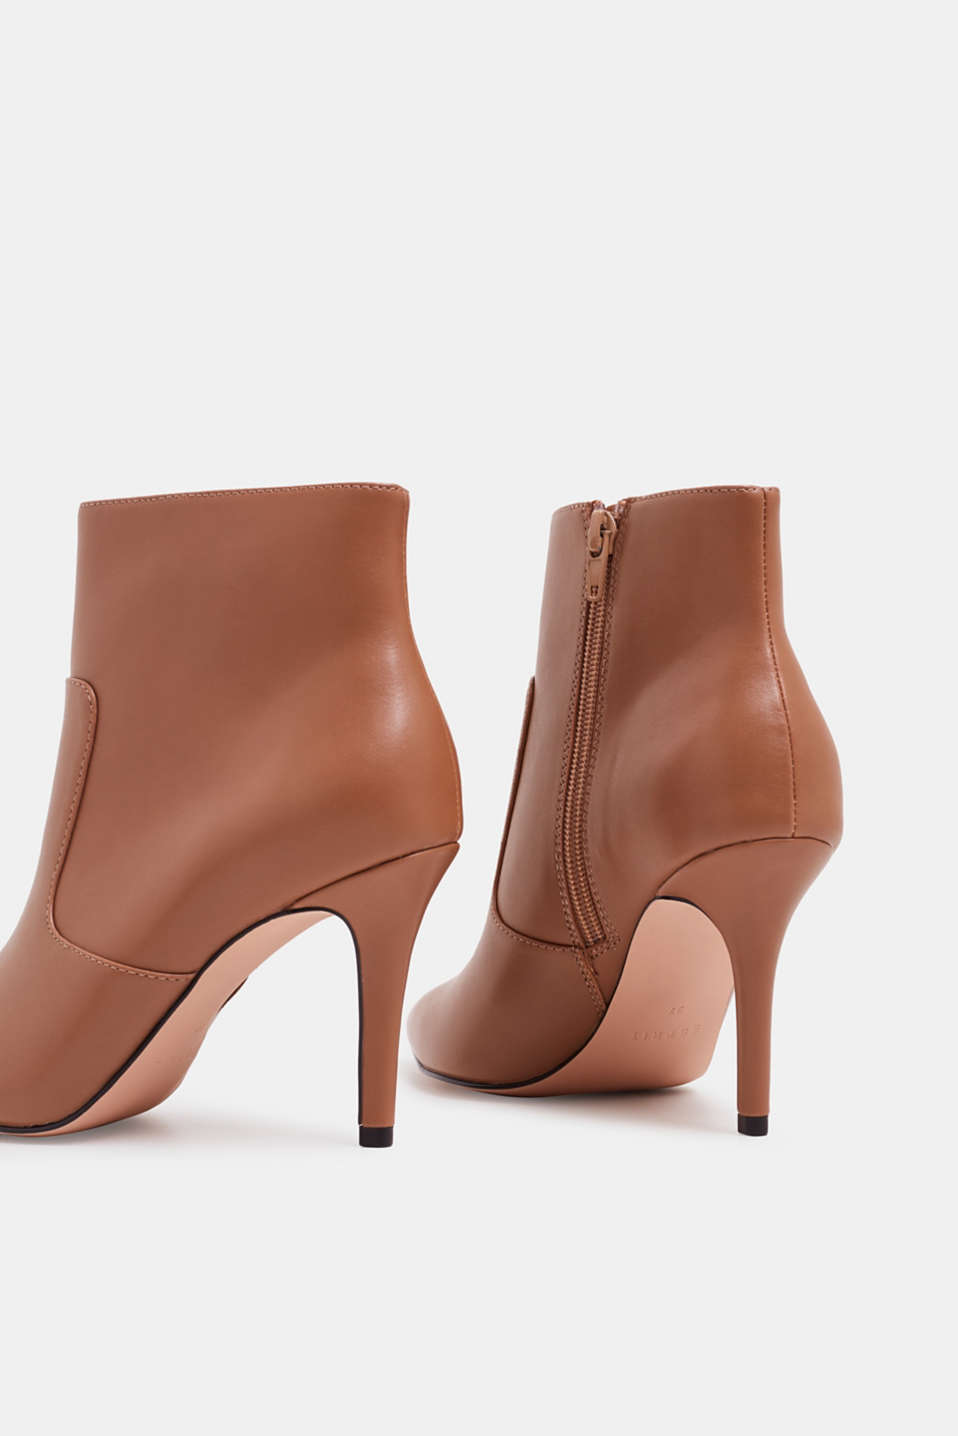 Ankle boots with kitten heel, made of faux leather, CAMEL, detail image number 5